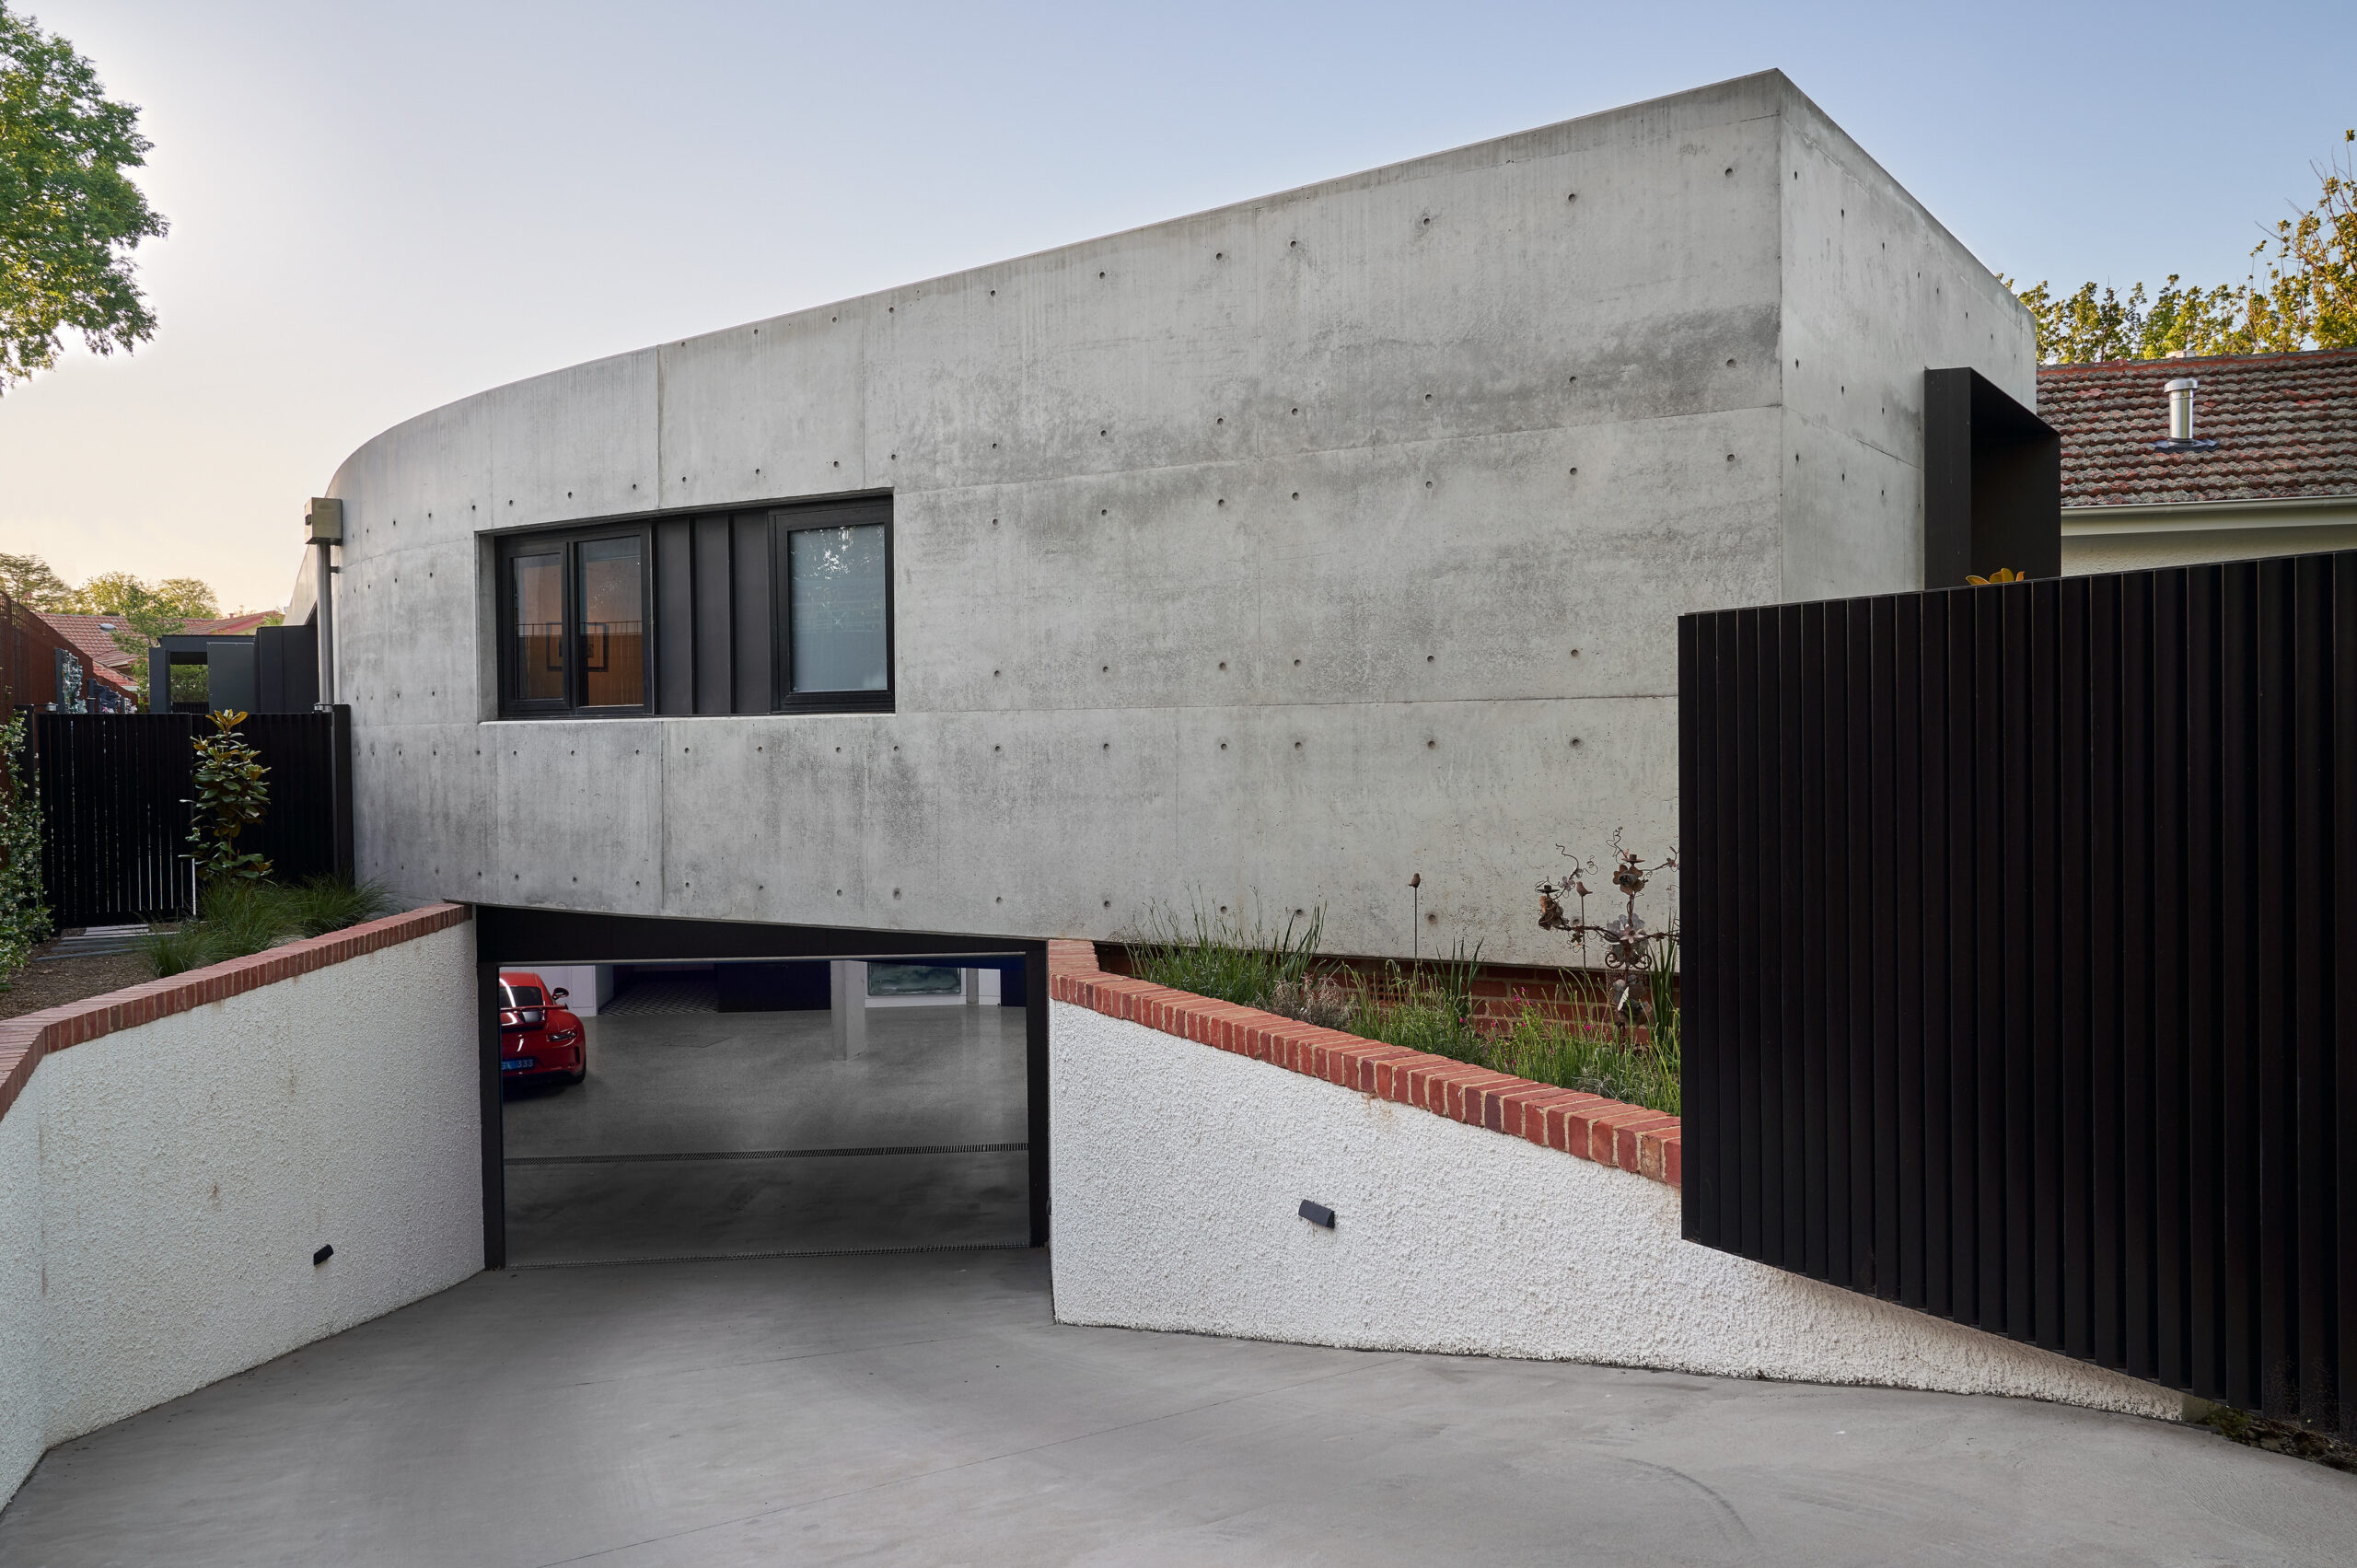 Underground garage positioned under sweeping curved off form concrete wall